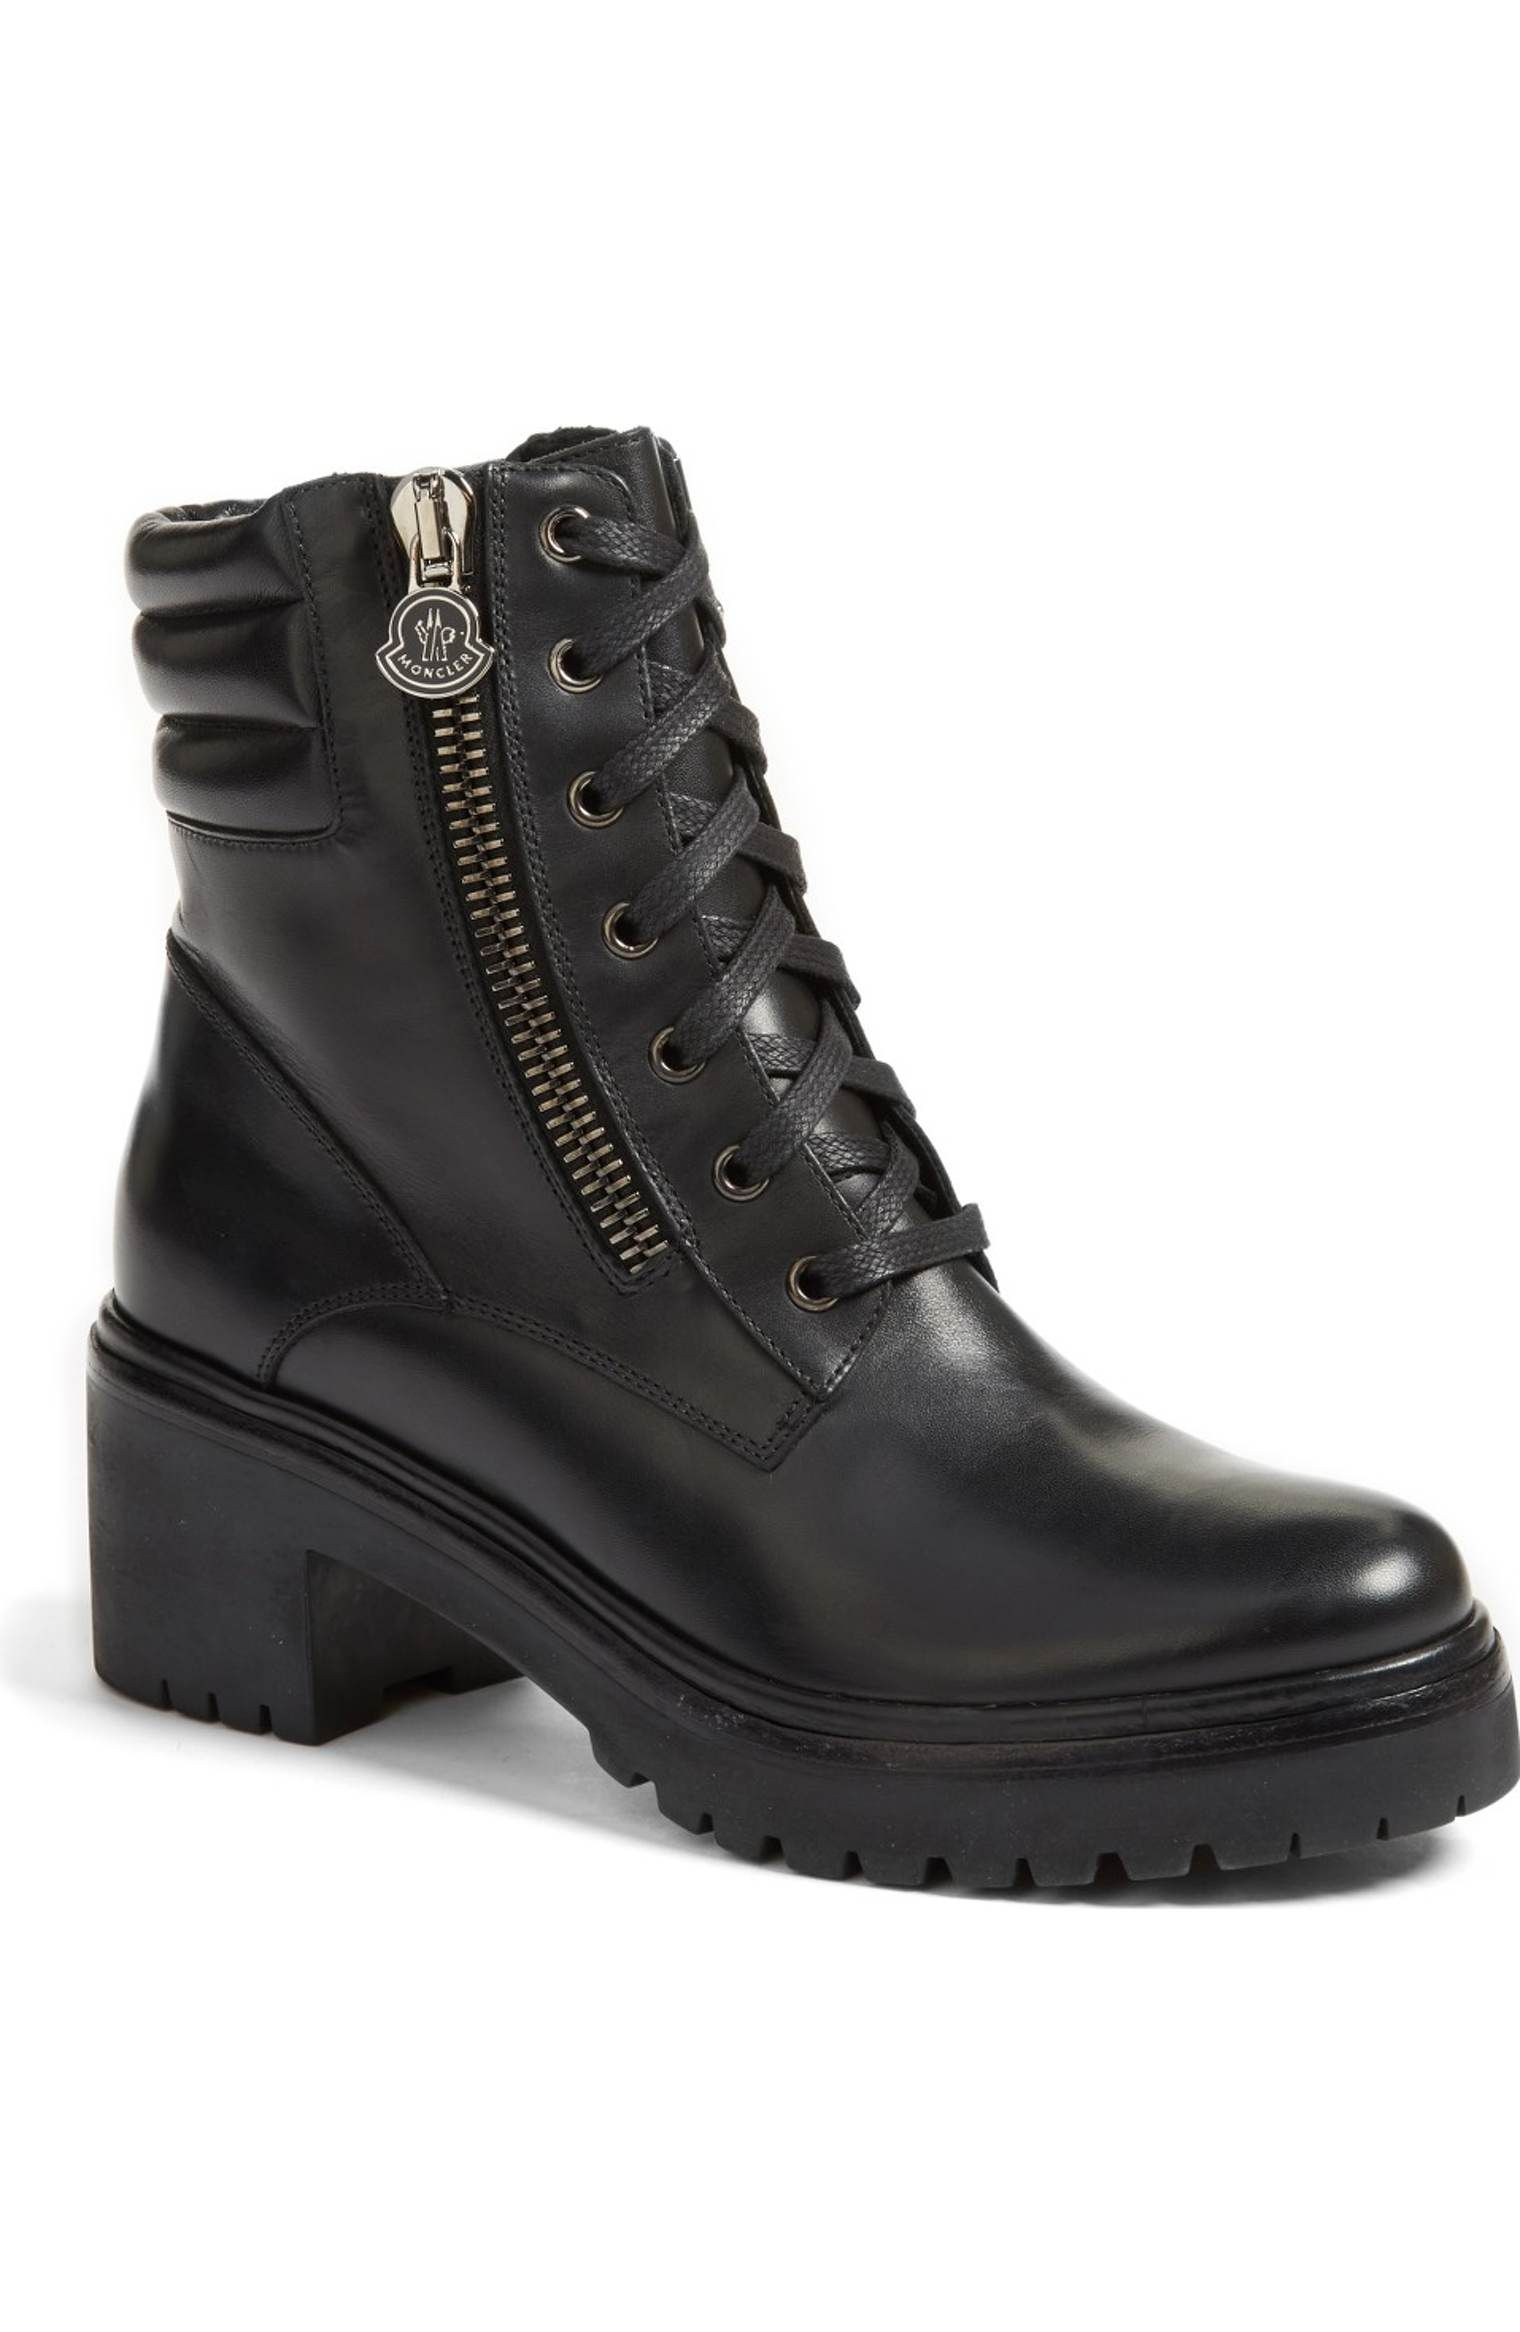 4f17c158d5f0 Main Image - Moncler Viviane Military Boot (Women)